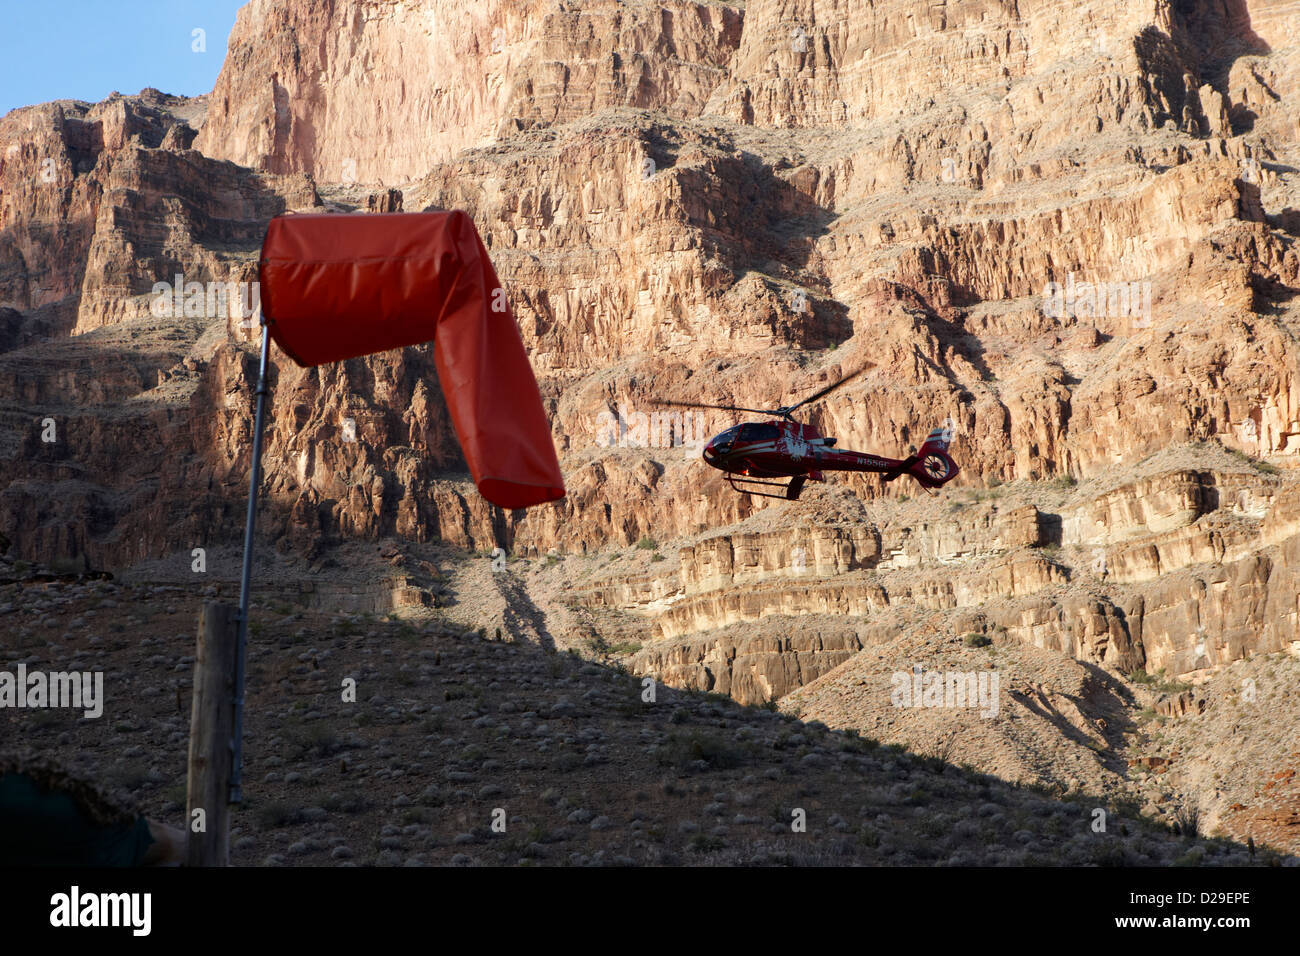 helicopter tours coming in to land on pad down in the Grand canyon Arizona USA - Stock Image